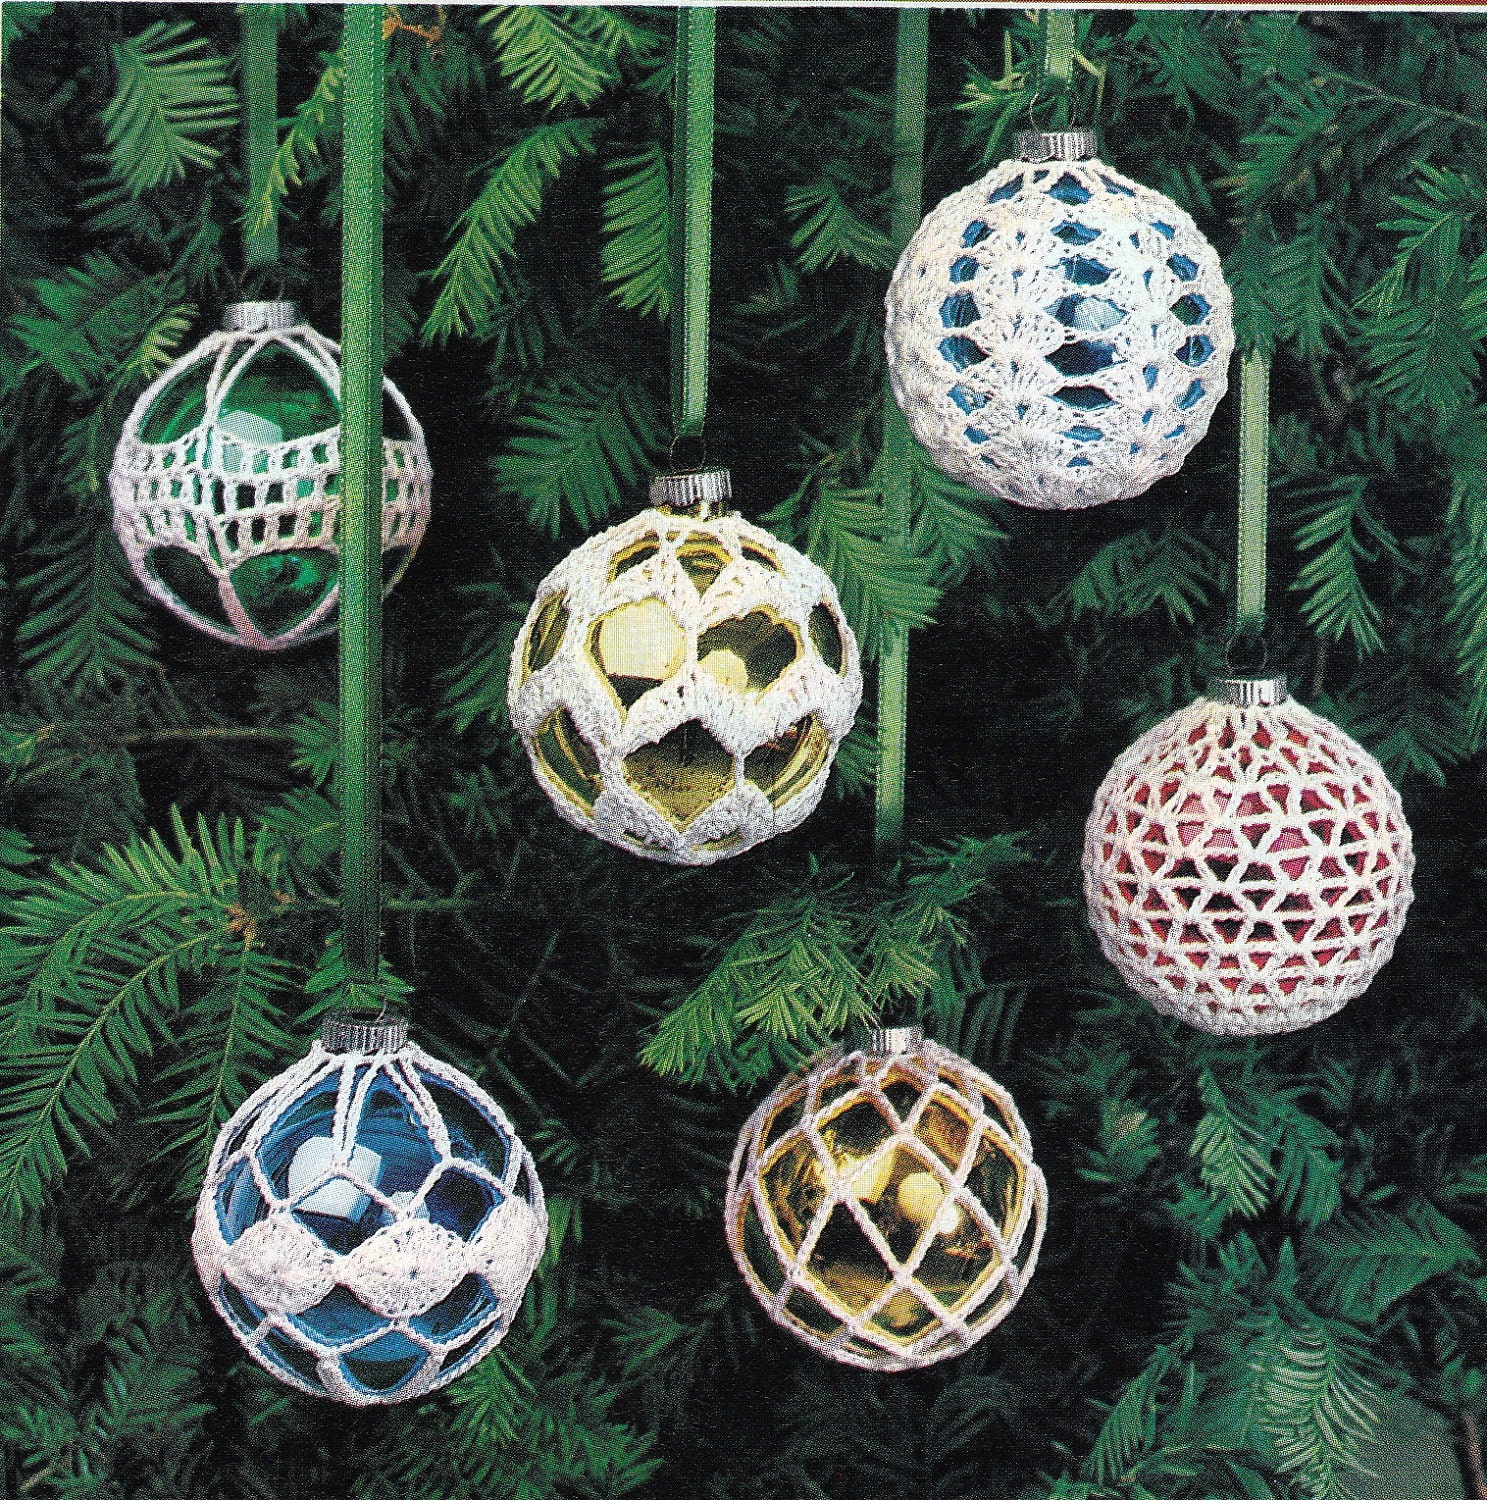 Crochet Christmas Ornament Covers Vintage Crocheting by padurns